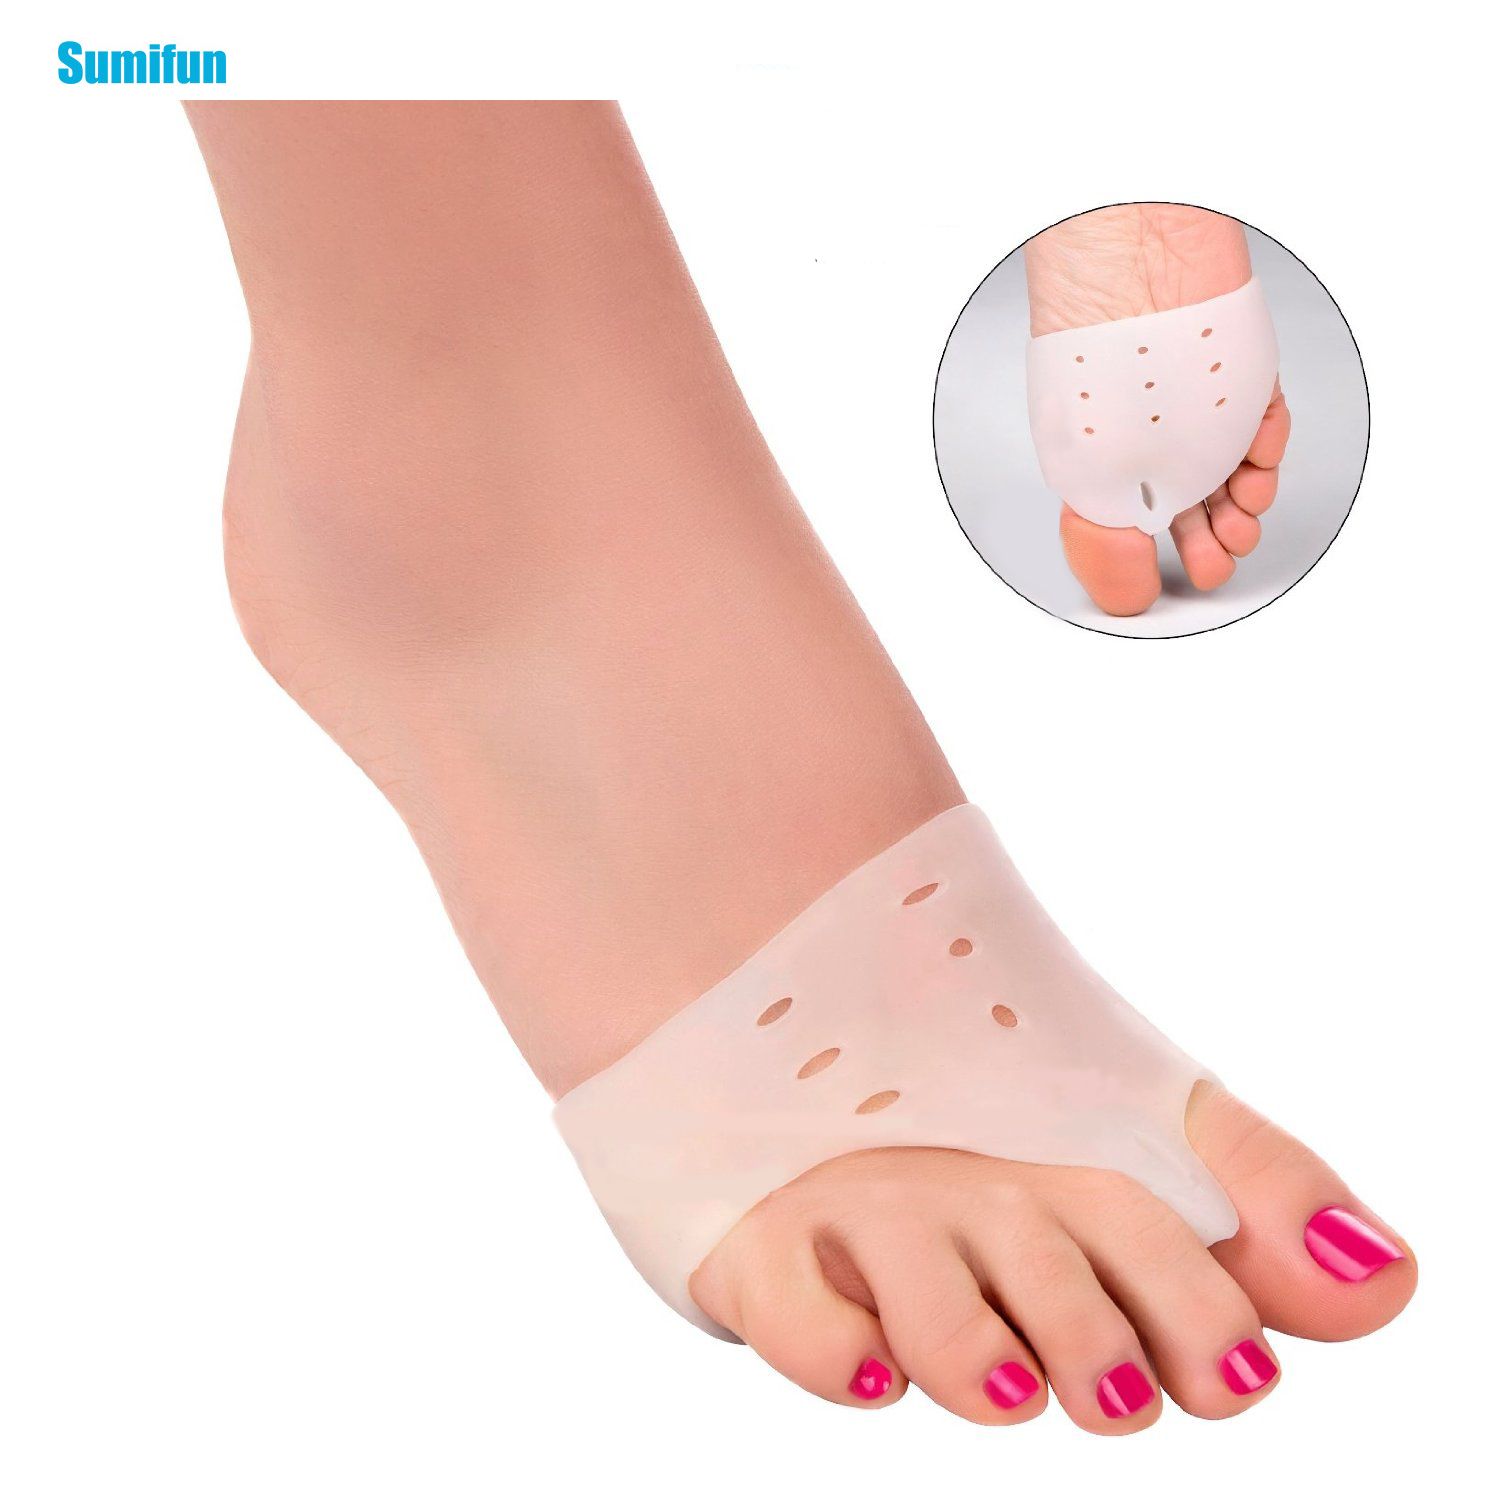 2Pcs Hallux Valgus Orthotics Foot Massager Toe Separator Corrective Insoles Toes Cloven Device Feet Care Z24601